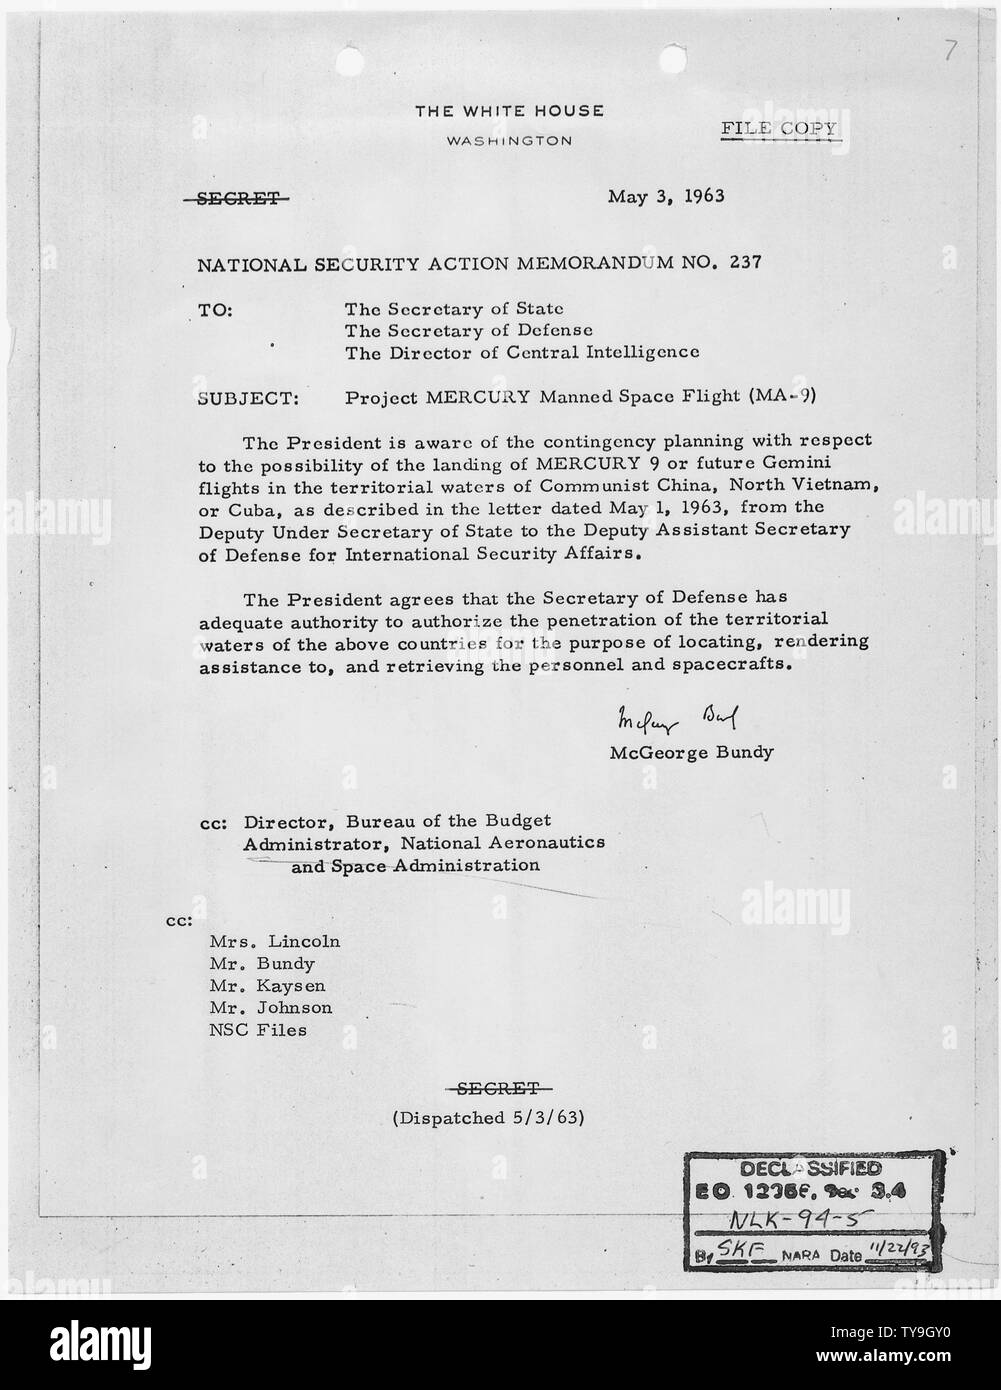 National Security Action Memorandum No. 237 Project MERCURY Manned Space Flight (MA-9); Scope and content:  Memorandum for Secretary of State, Secretary of Defense, Director, Central Intelligence Agency concerning the possible landing of MERCURY 9 in the territorial waters of Communist China. - Stock Image